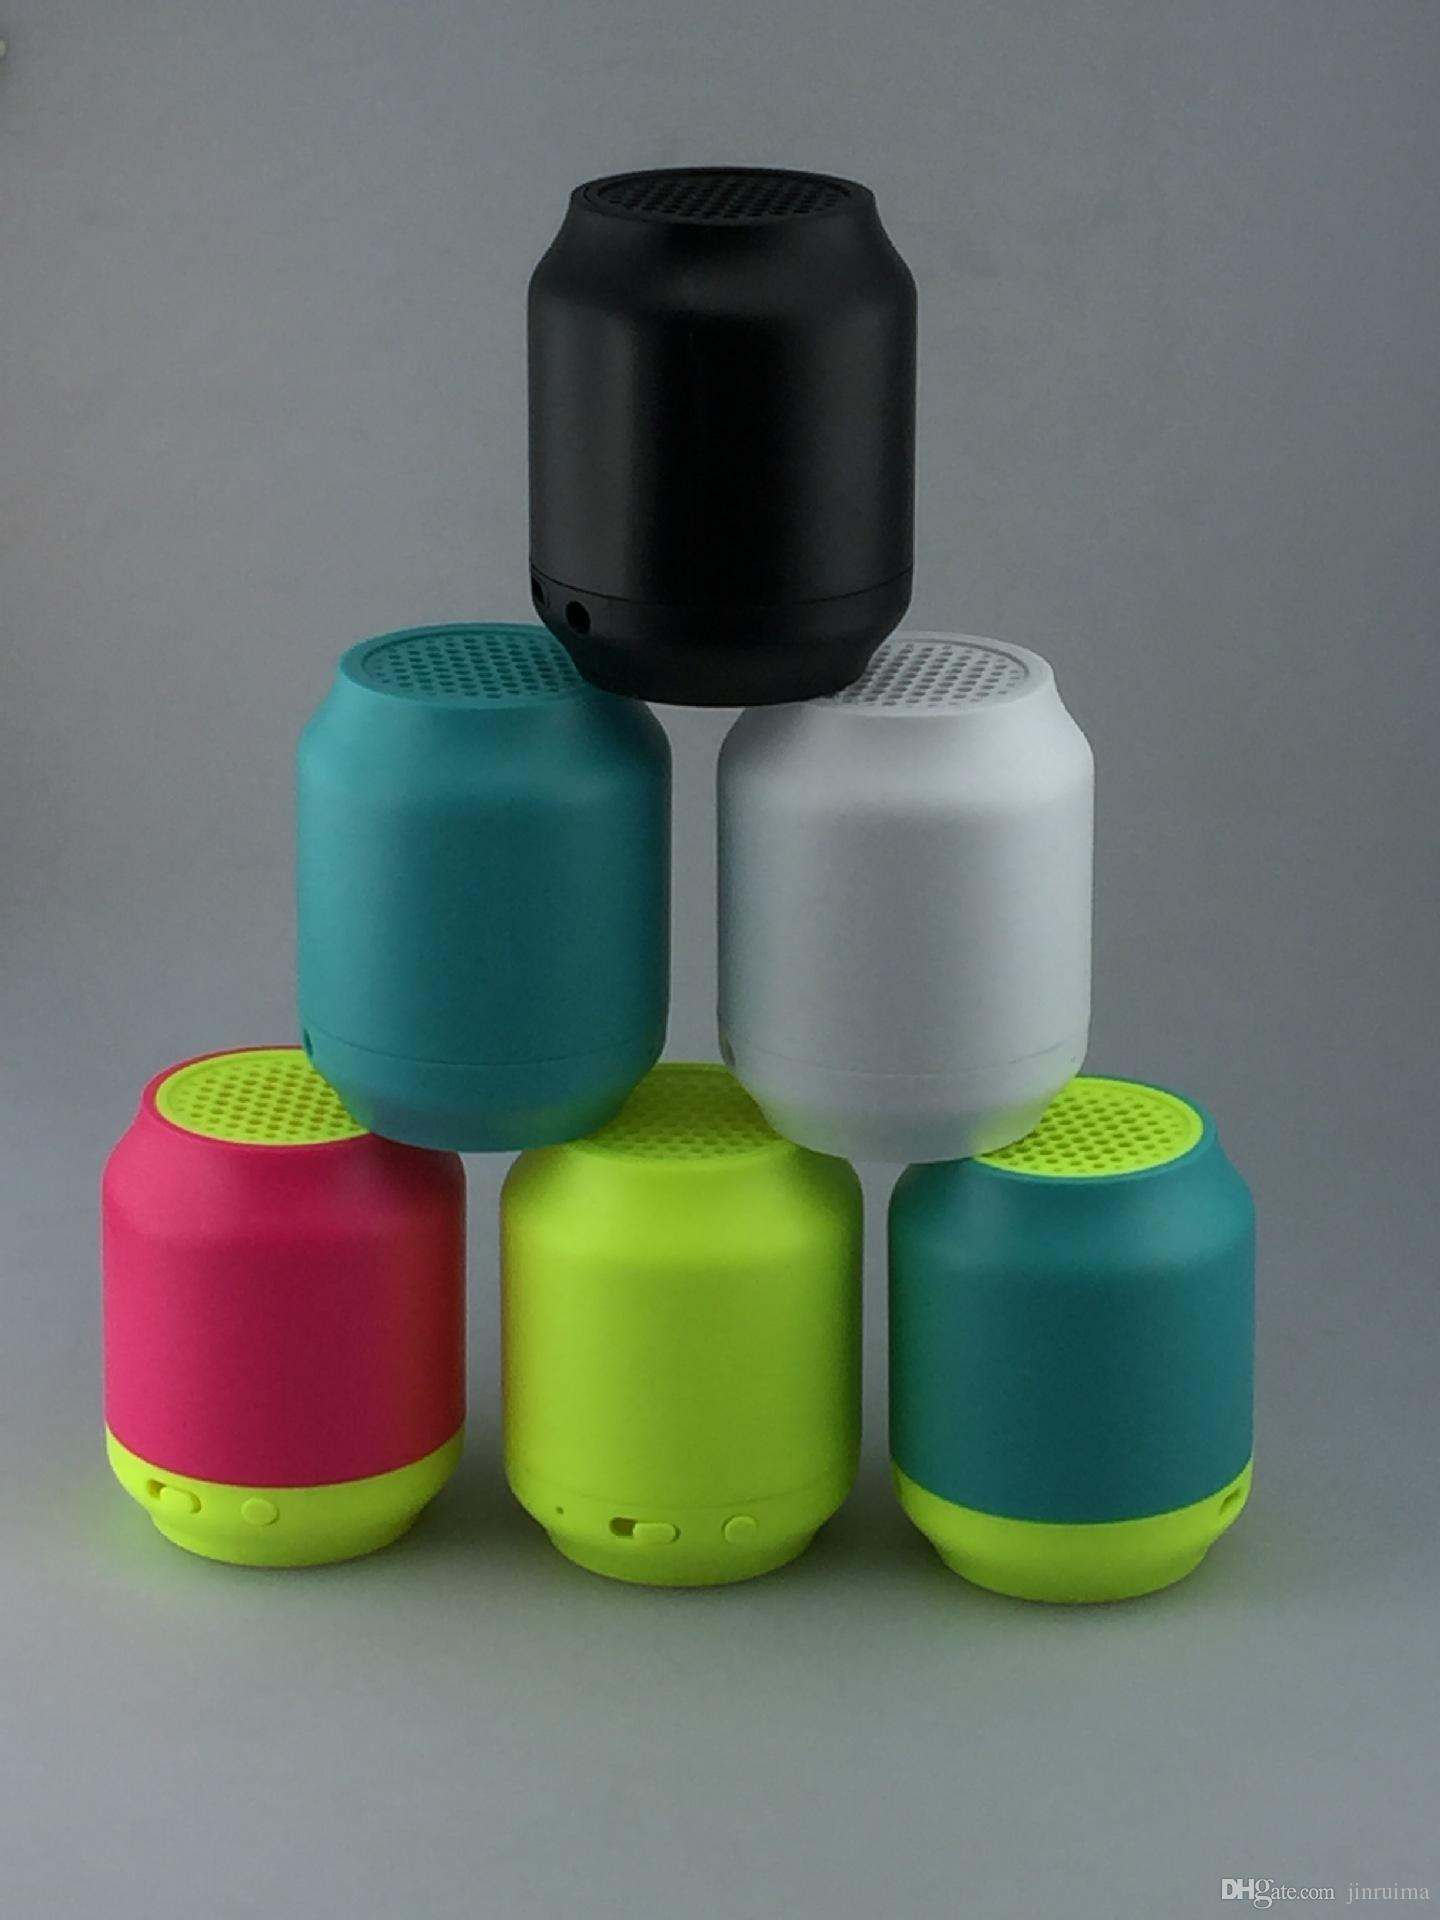 --BT-25 Bluetooth Speaker Mini portable computer small stereo small outdoor creative gifts